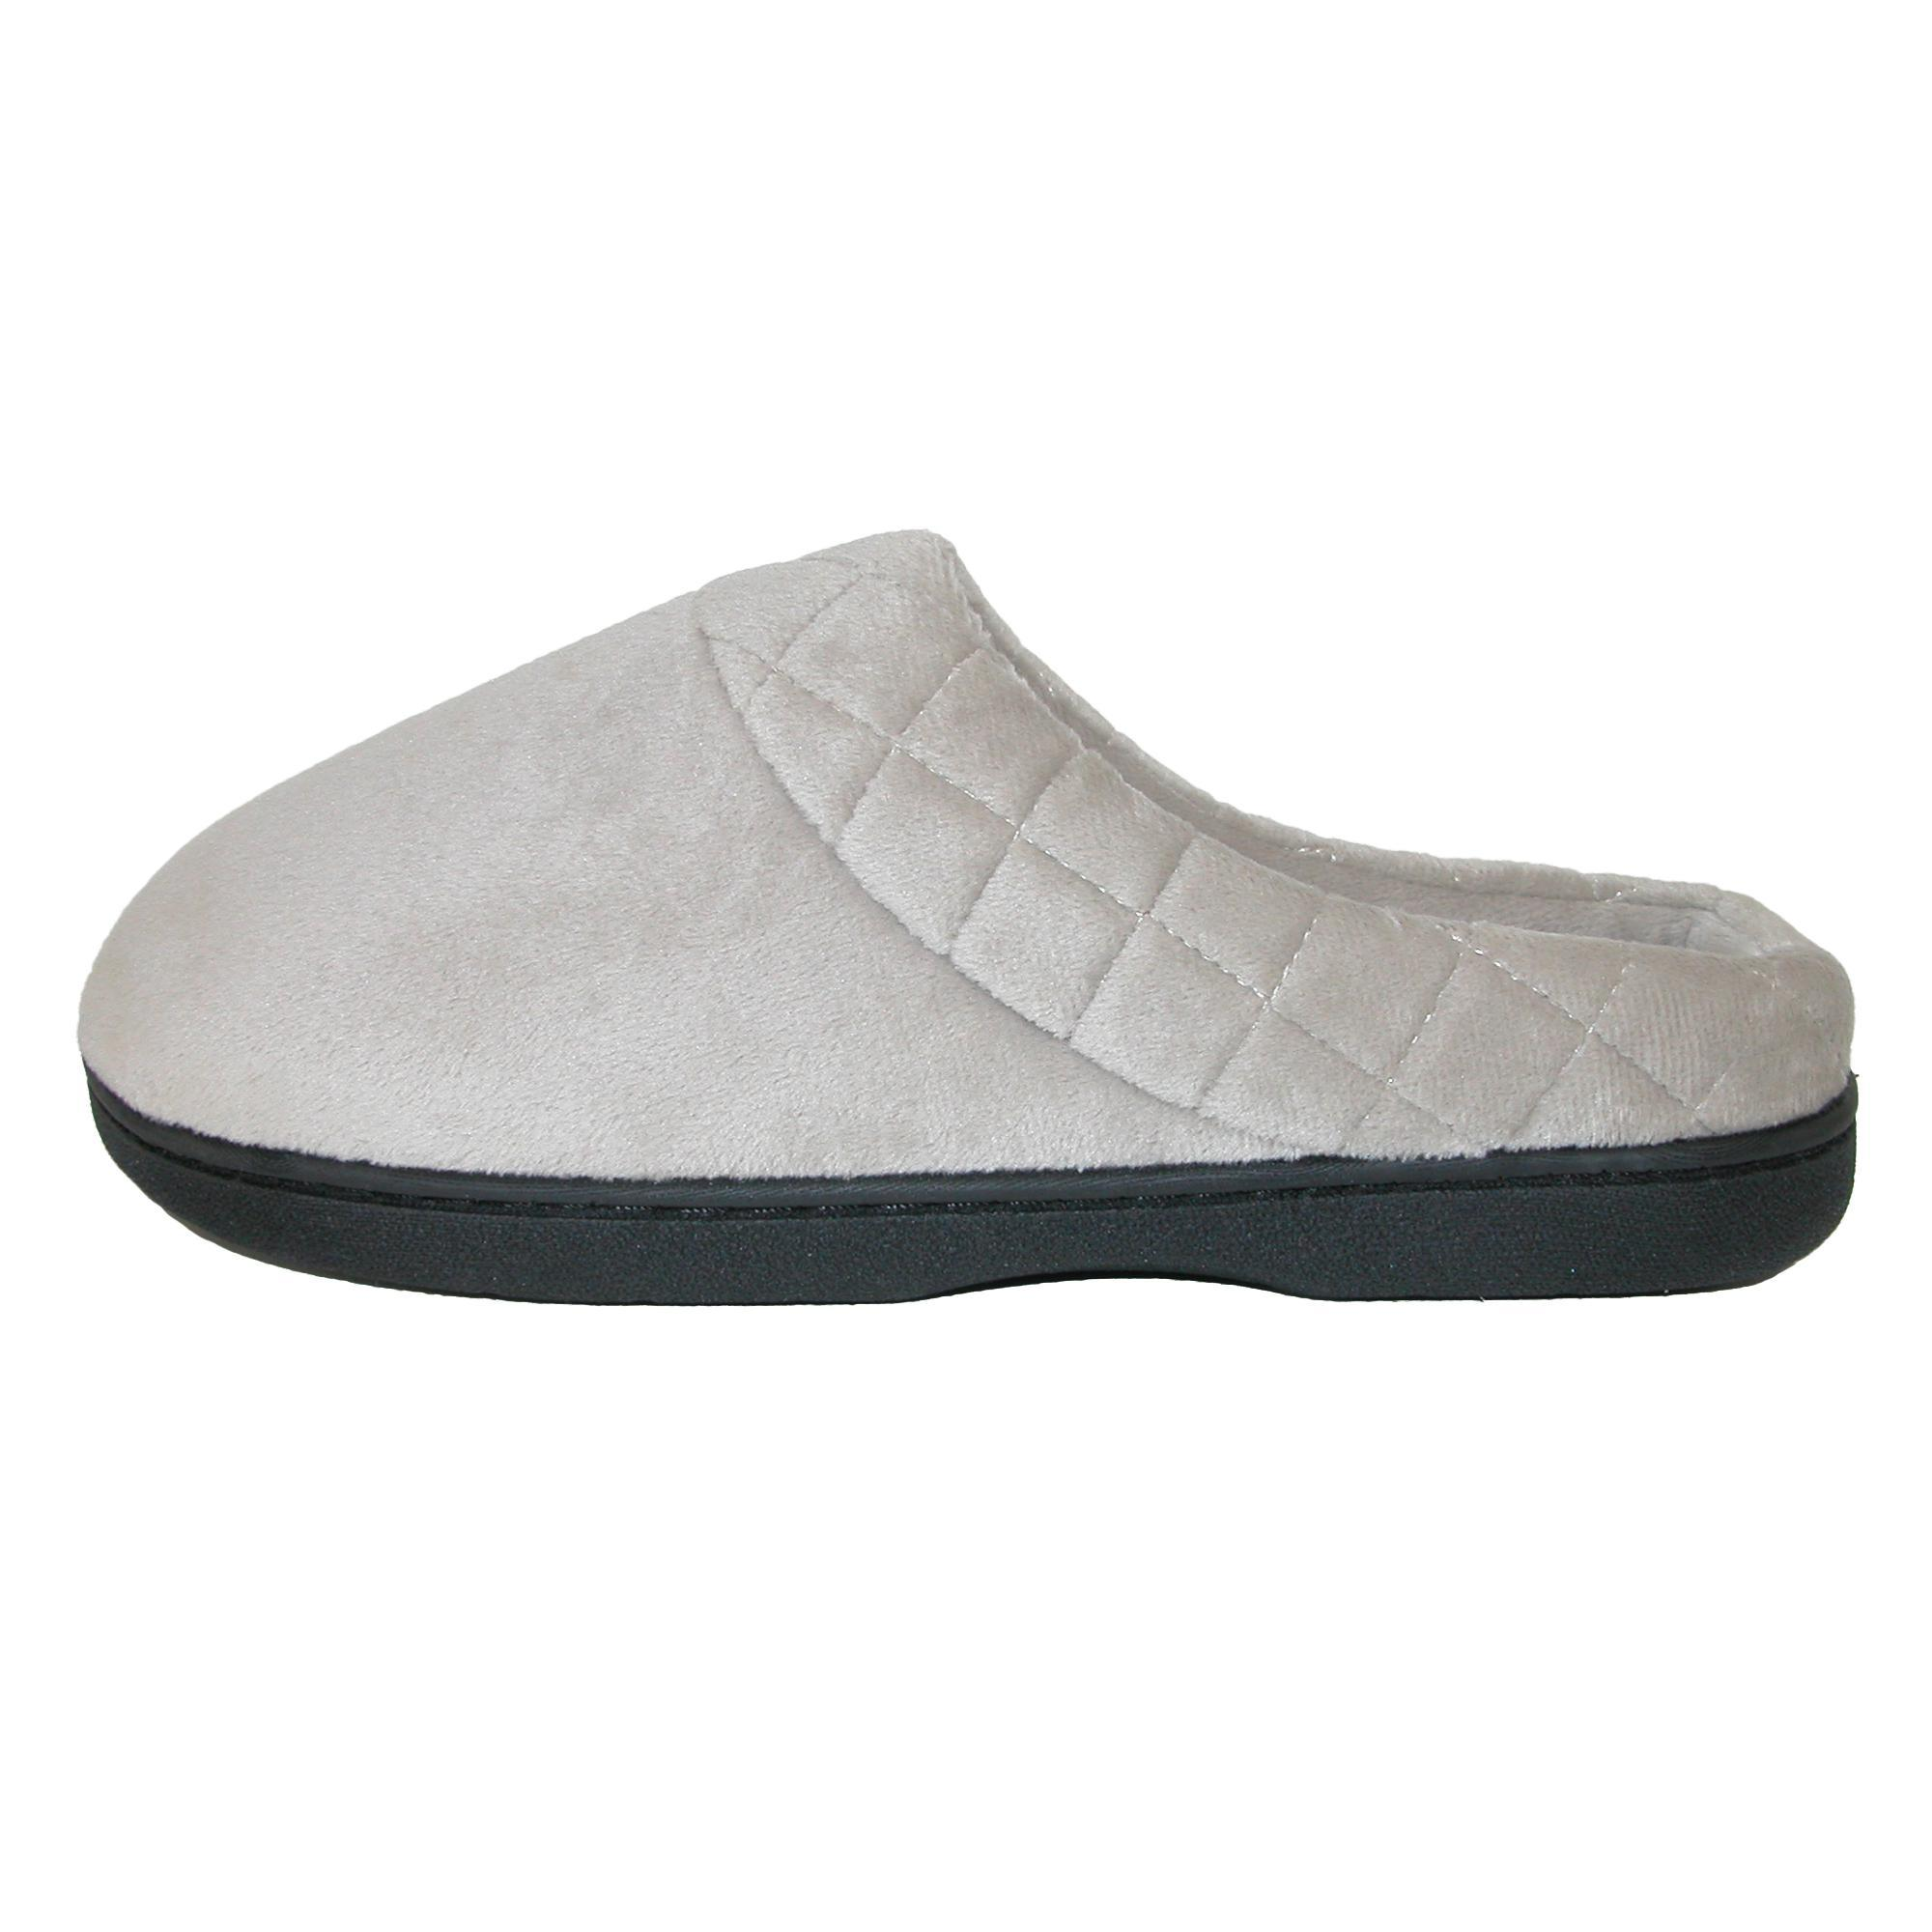 New-Dearfoams-Women-039-s-Microfiber-Velour-Clog-Slipper-with-Quilt-Detail thumbnail 14